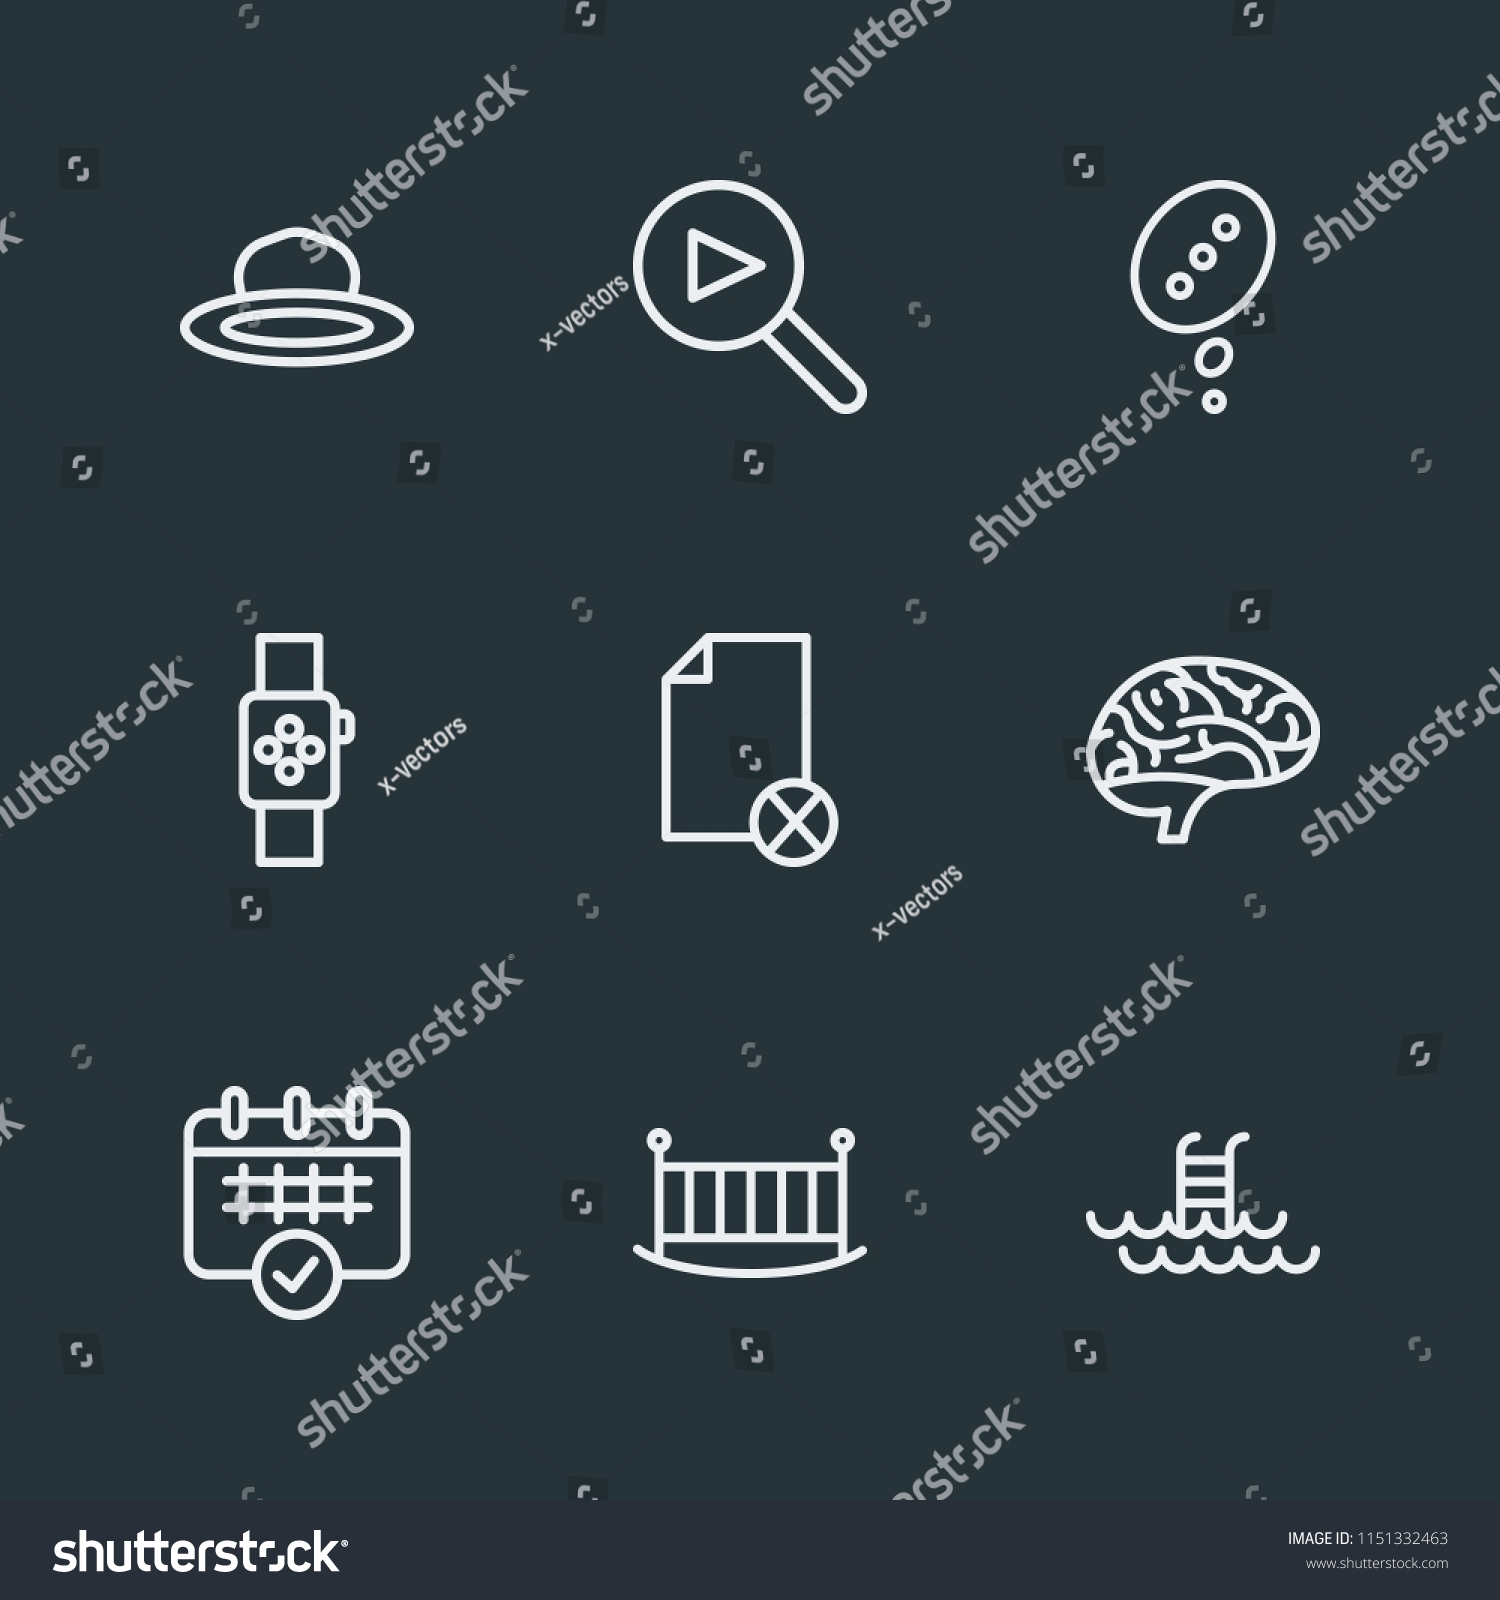 Modern Flat Simple Vector Icon Set Stock Royalty Free Basic Schematic Of A Classh Configuration Contains Icons Class Small Home Screen